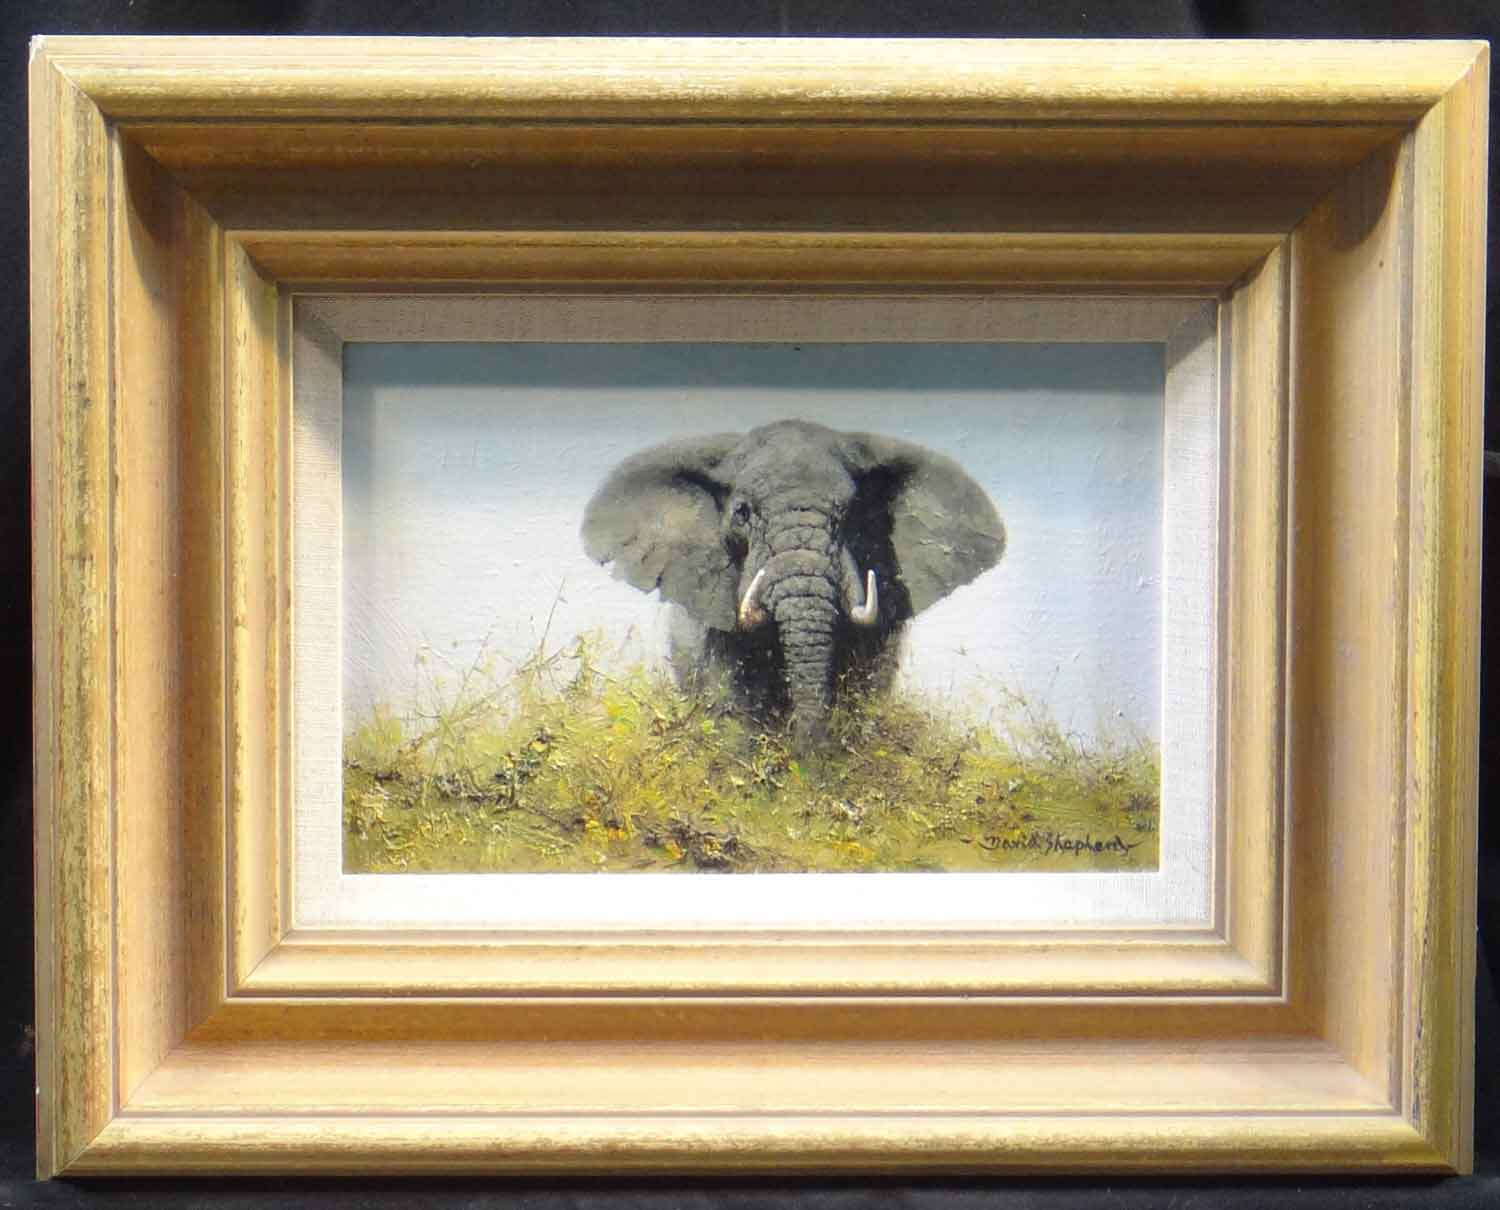 david shepherd original elephant